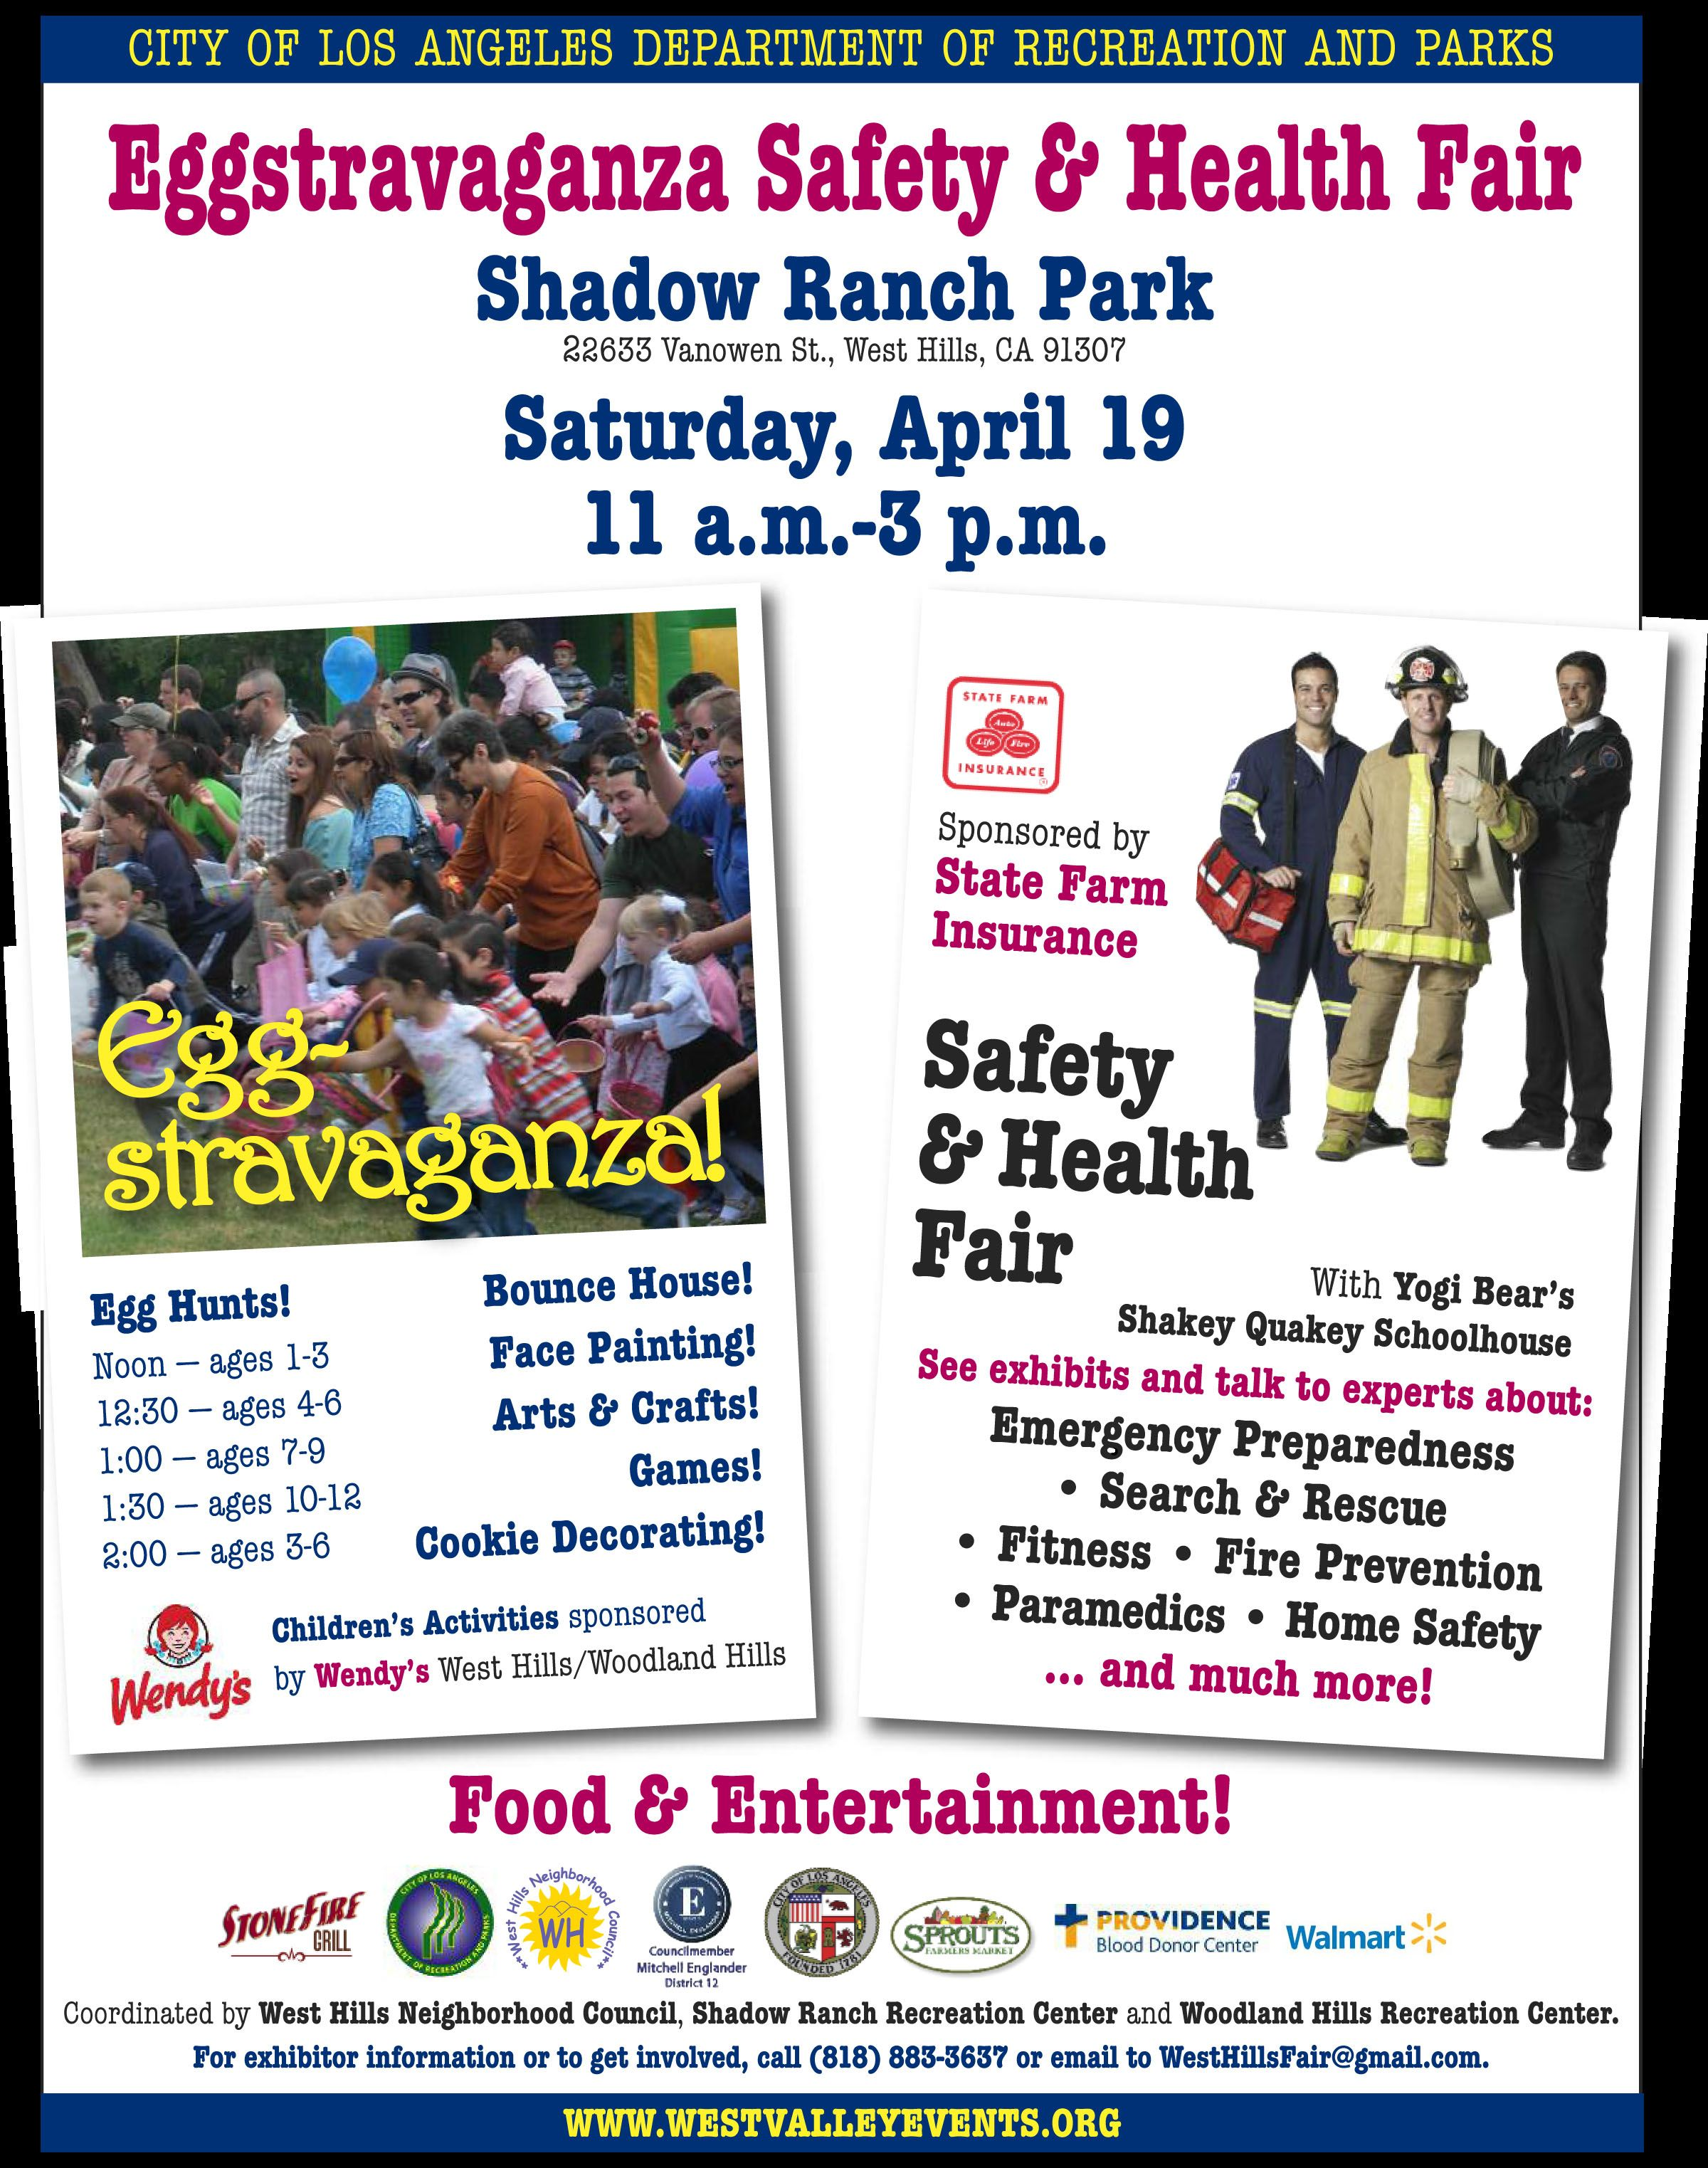 Eggstravaganza Safety & Health Fair sponsored by State Farm at Shadow Ranch Park in Woodland Hills